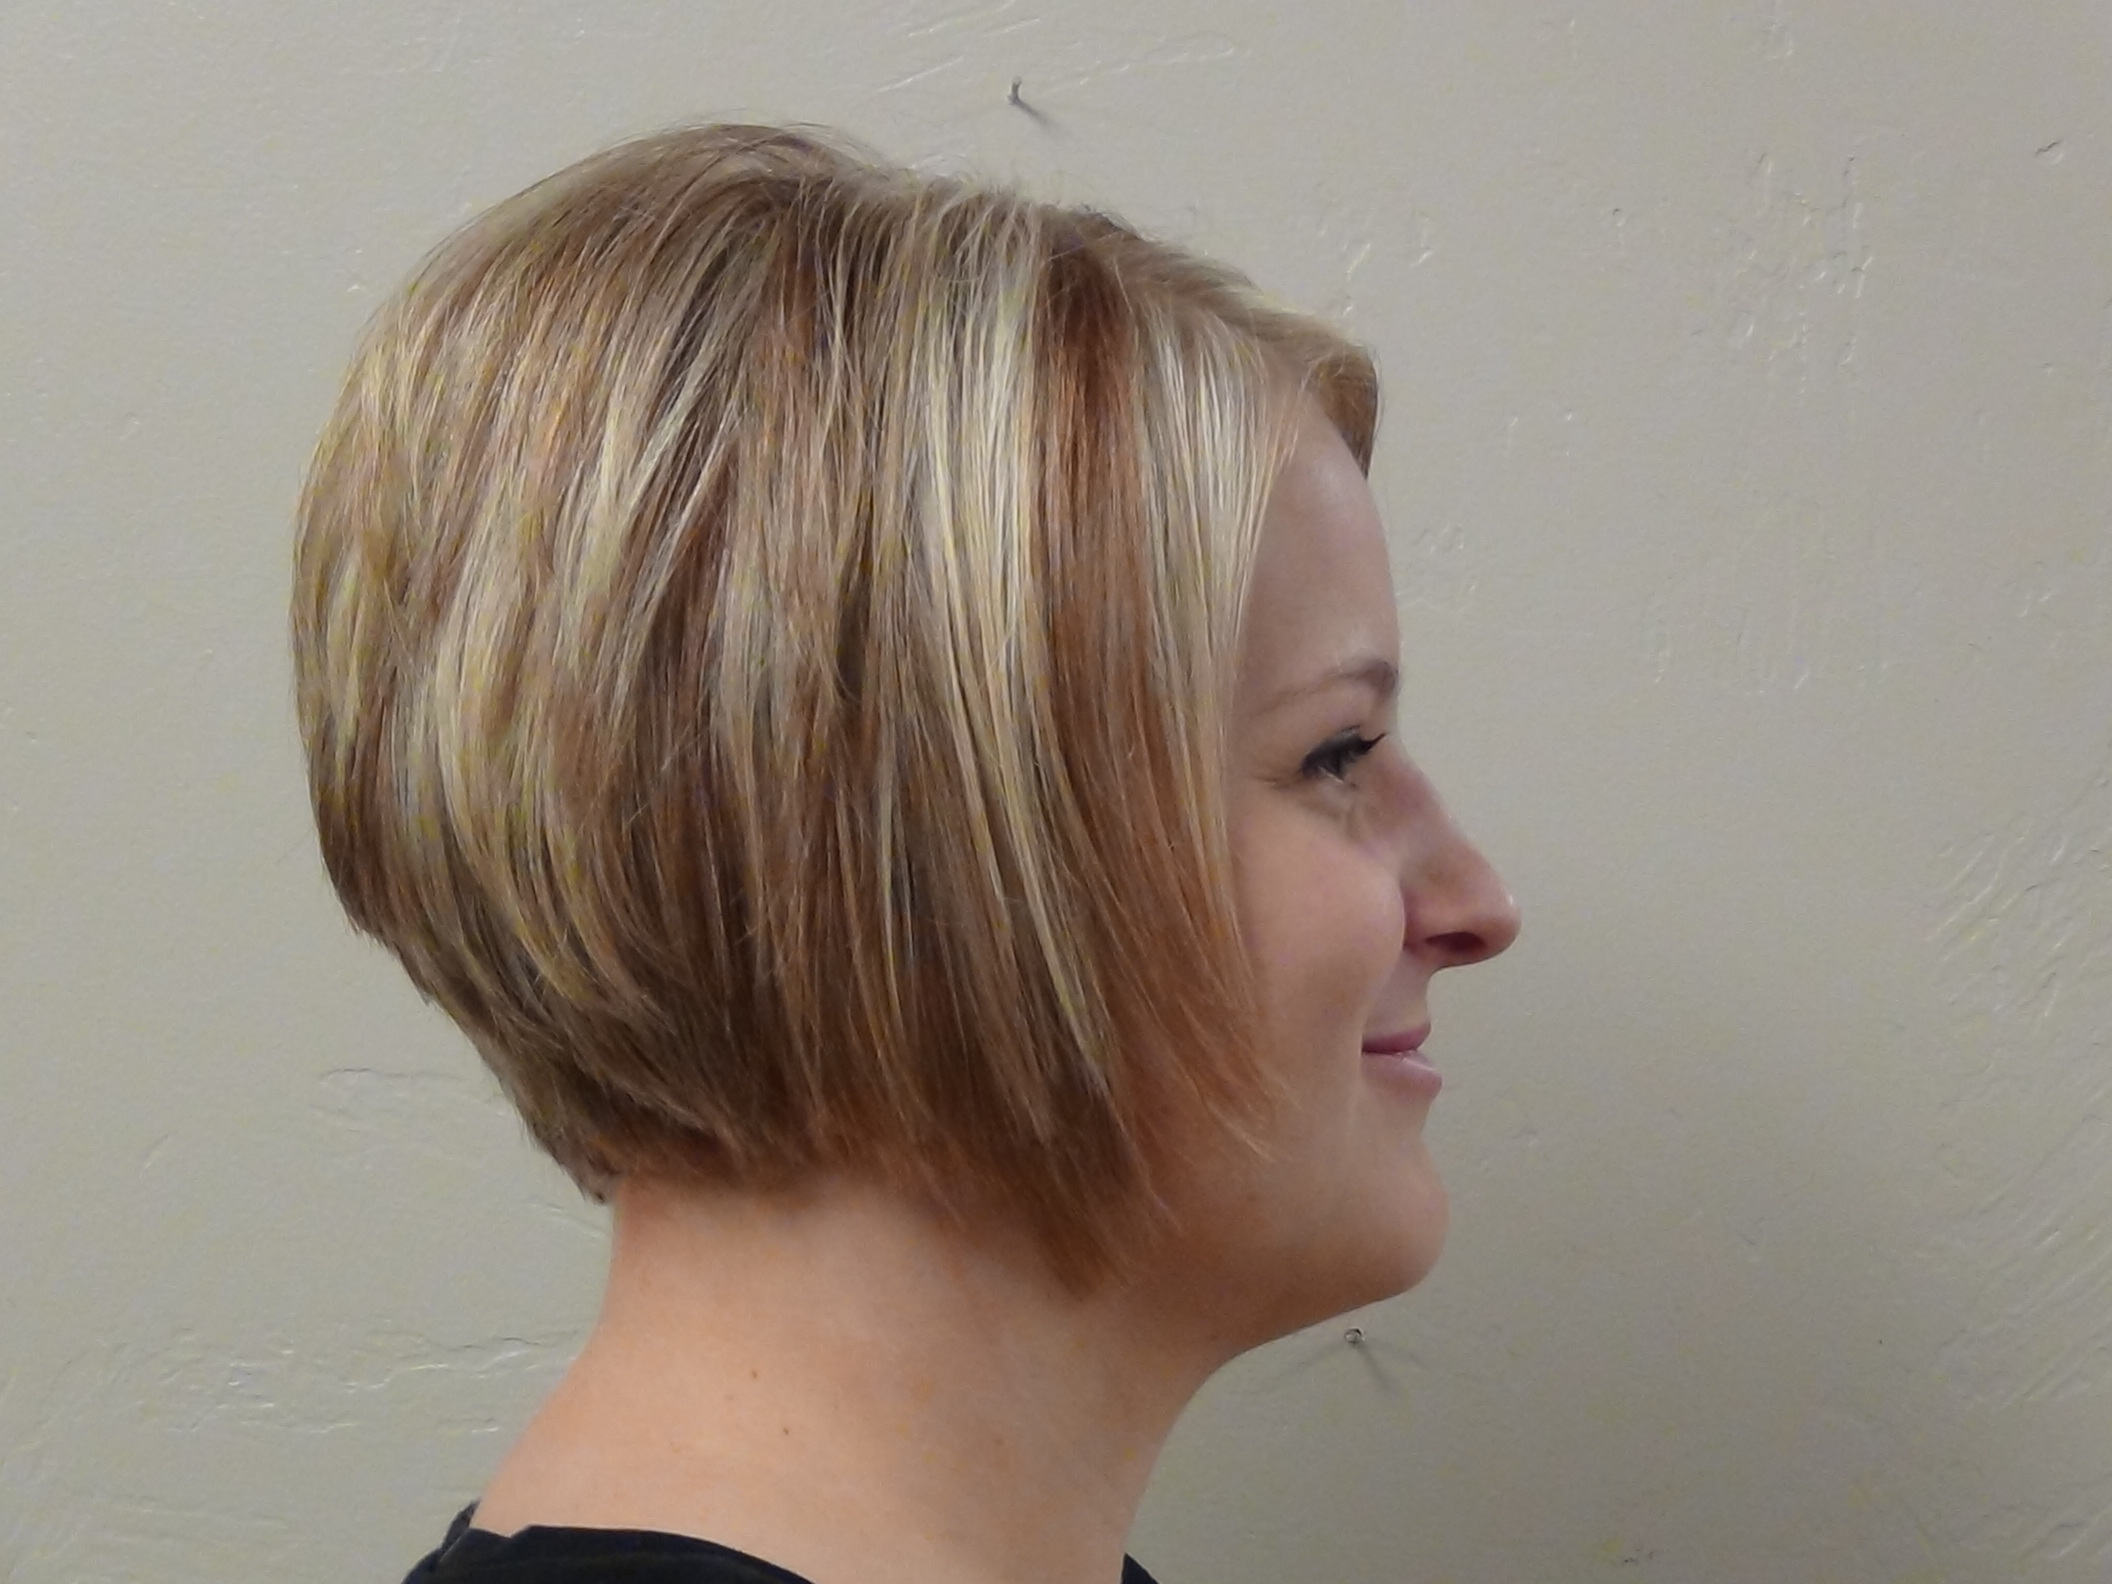 Thicken Hair with A Line Haircut or Bob Cut Hairstyle Update